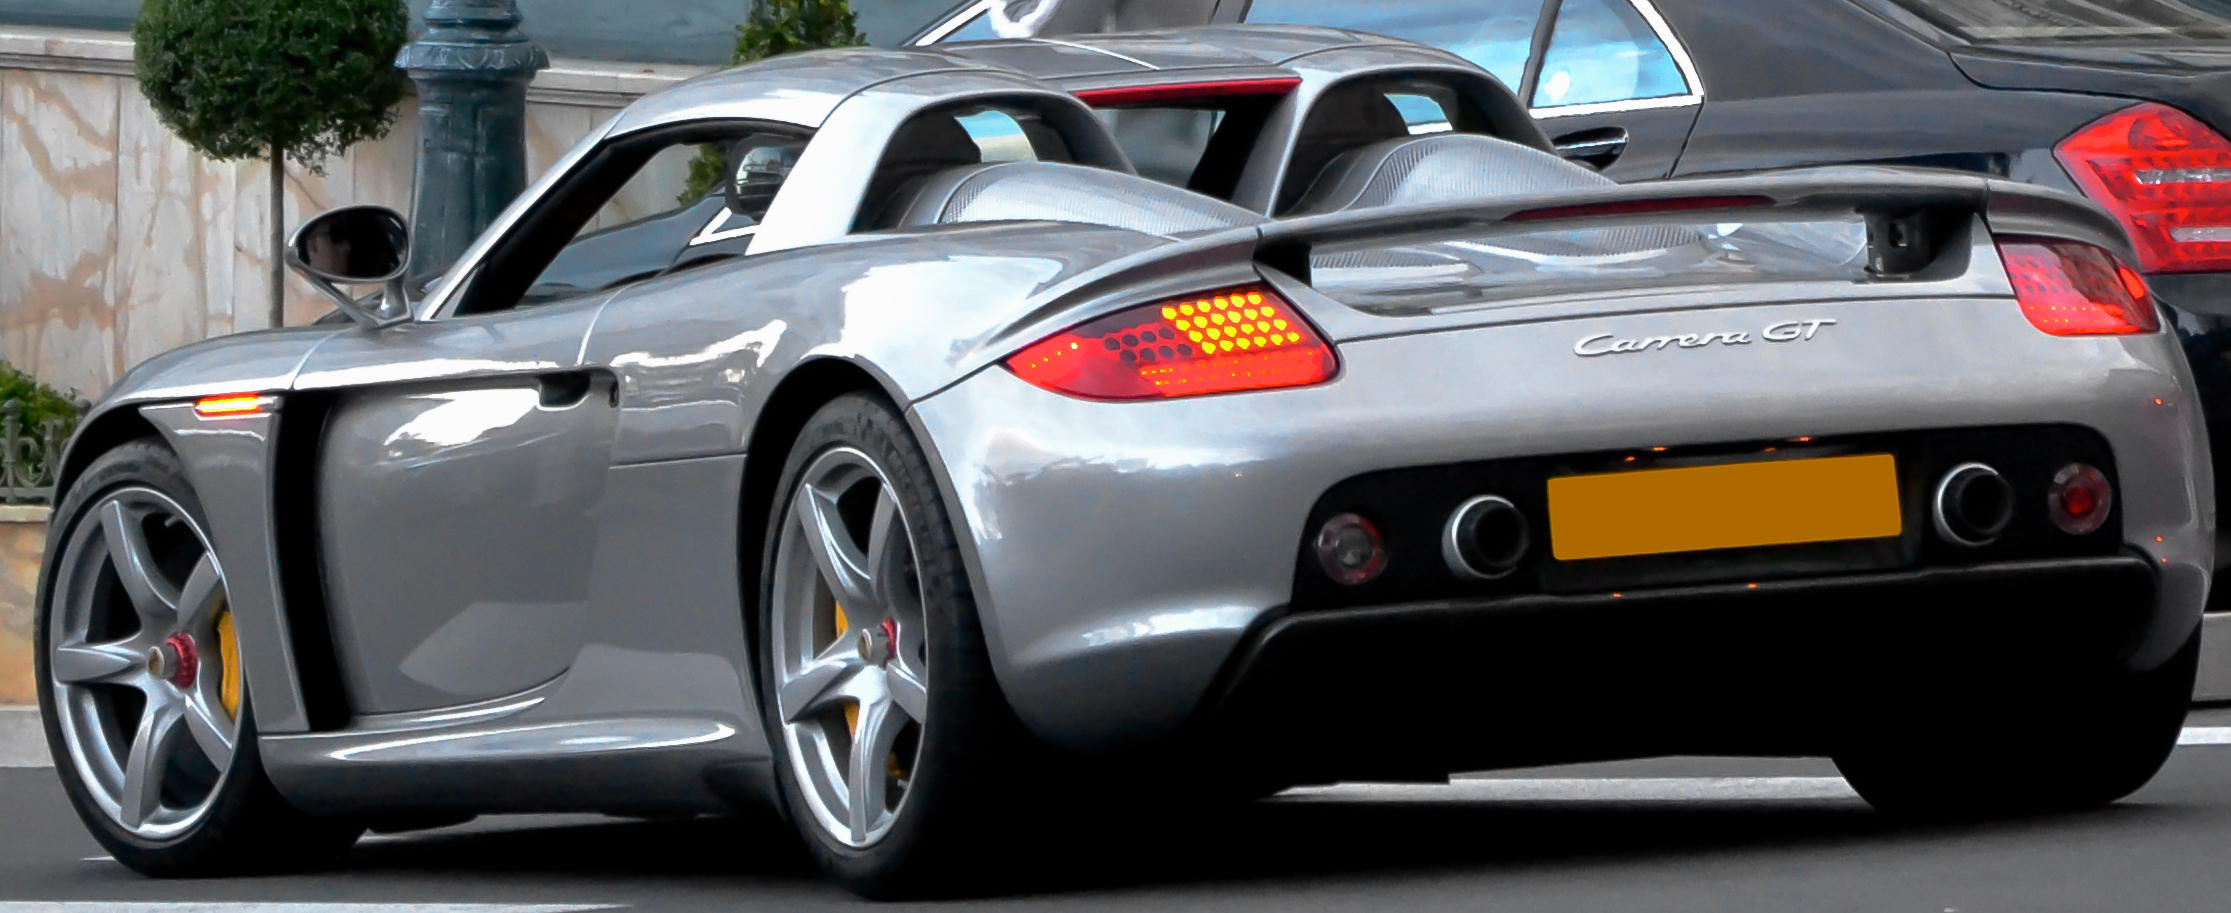 file porsche carrera gt 7616235846 cropped jpg wikimedia commons. Black Bedroom Furniture Sets. Home Design Ideas